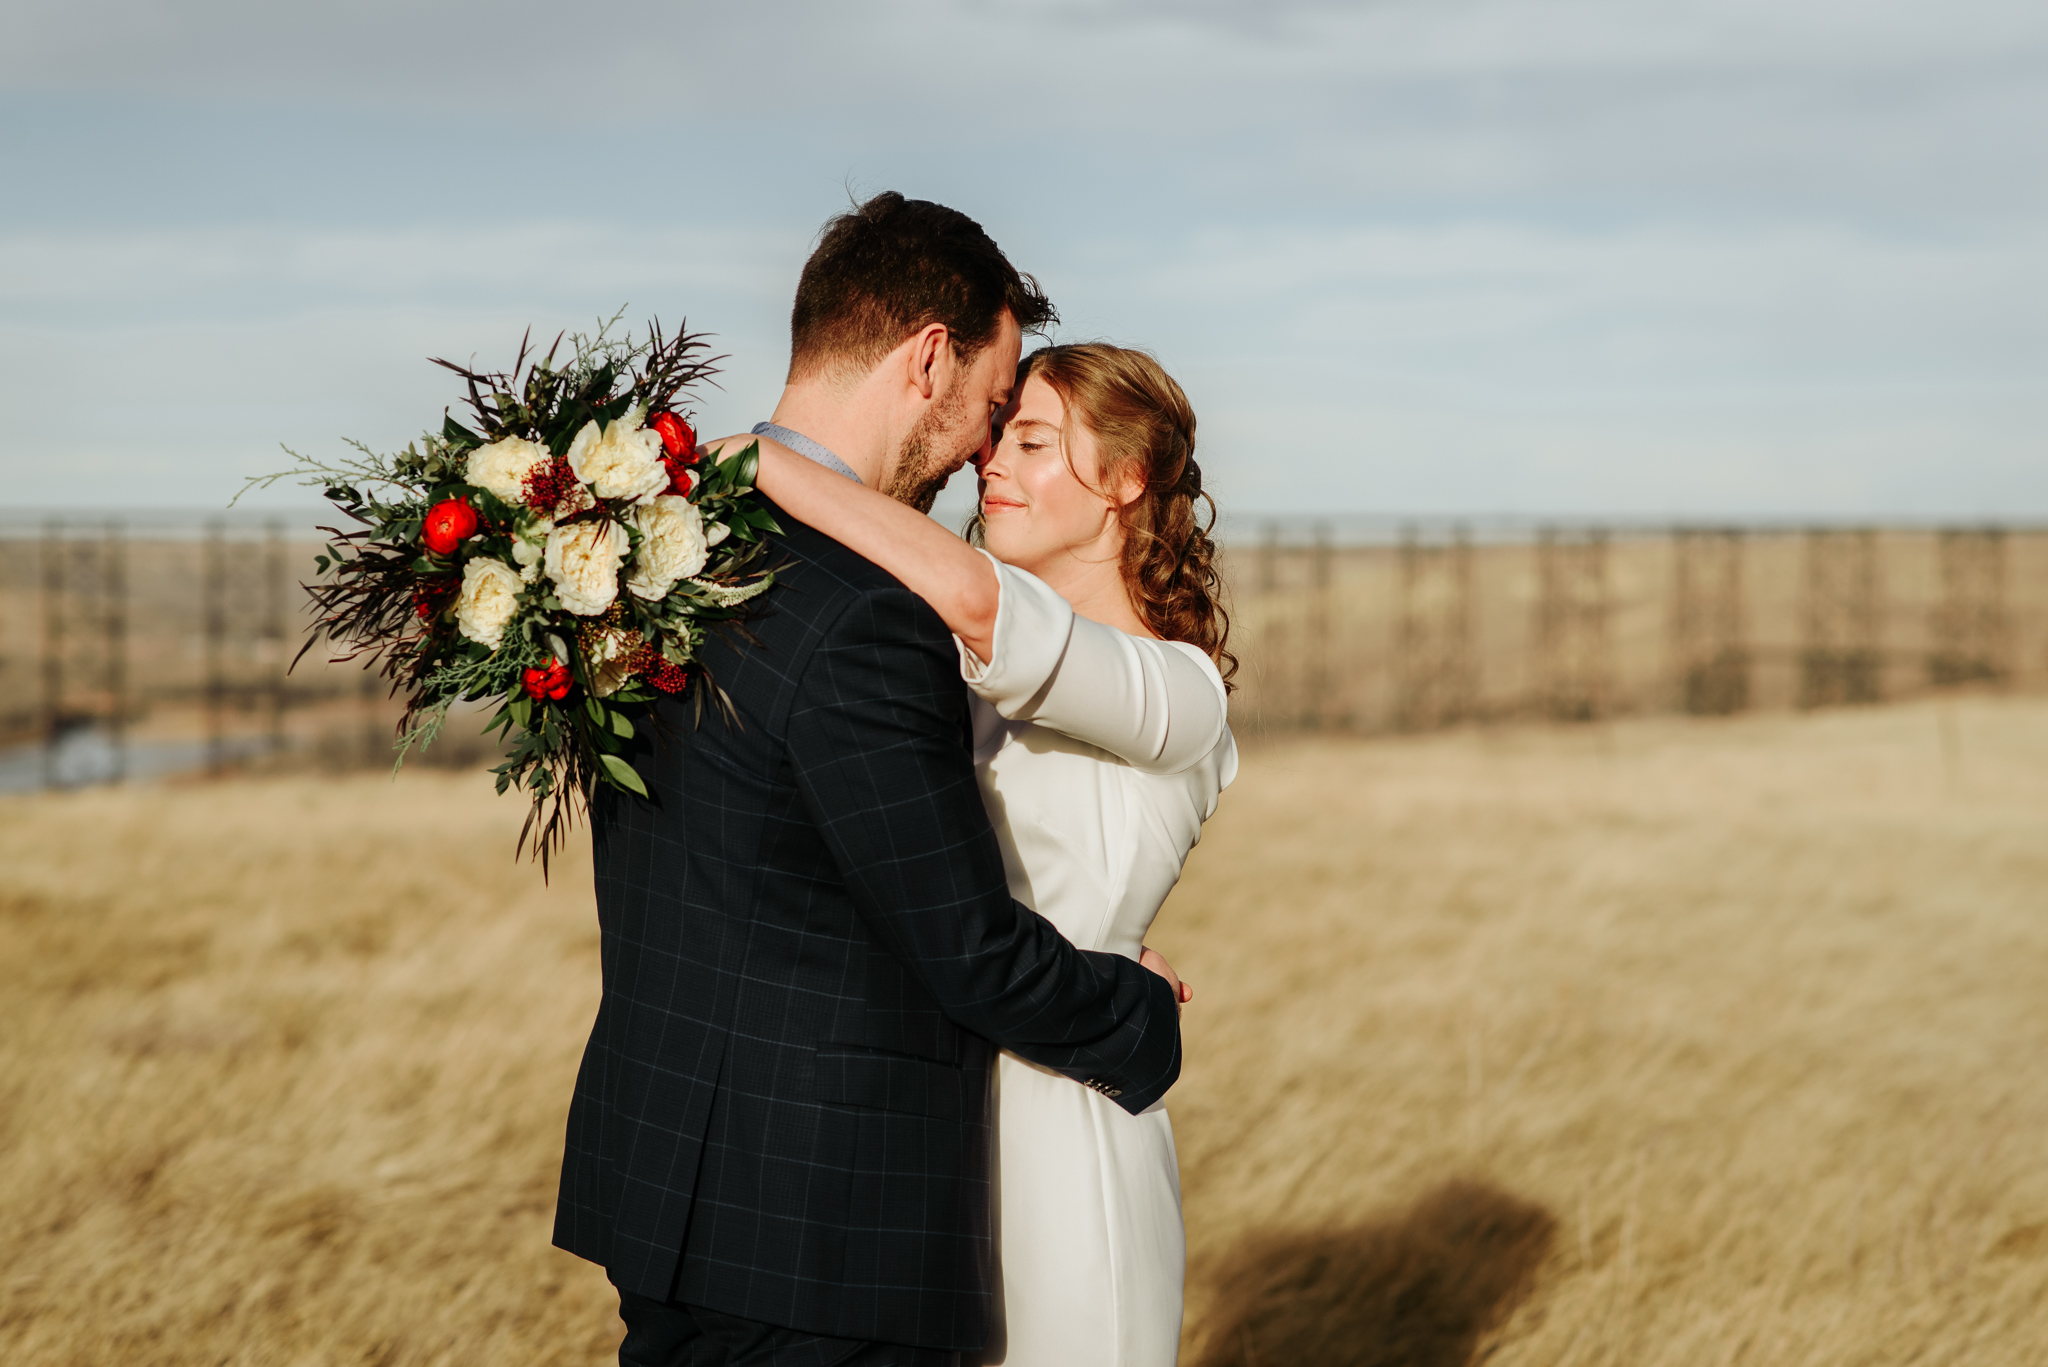 lethbridge-wedding-photographer-love-and-be-loved-photography-kris-amy-paradise-canyon-image-picture-photo-14.jpg